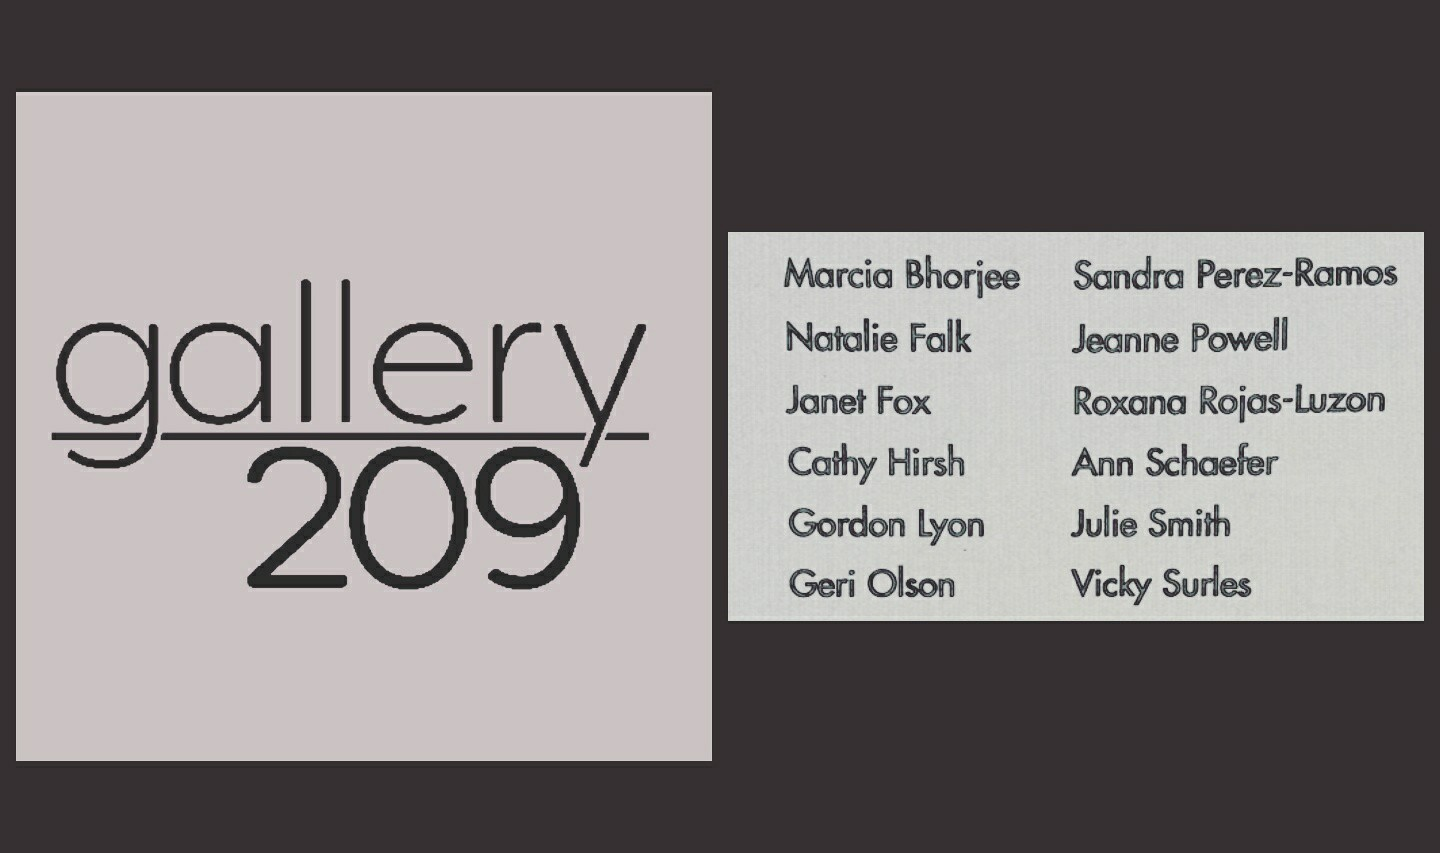 Gallery 209- The 12 Artists